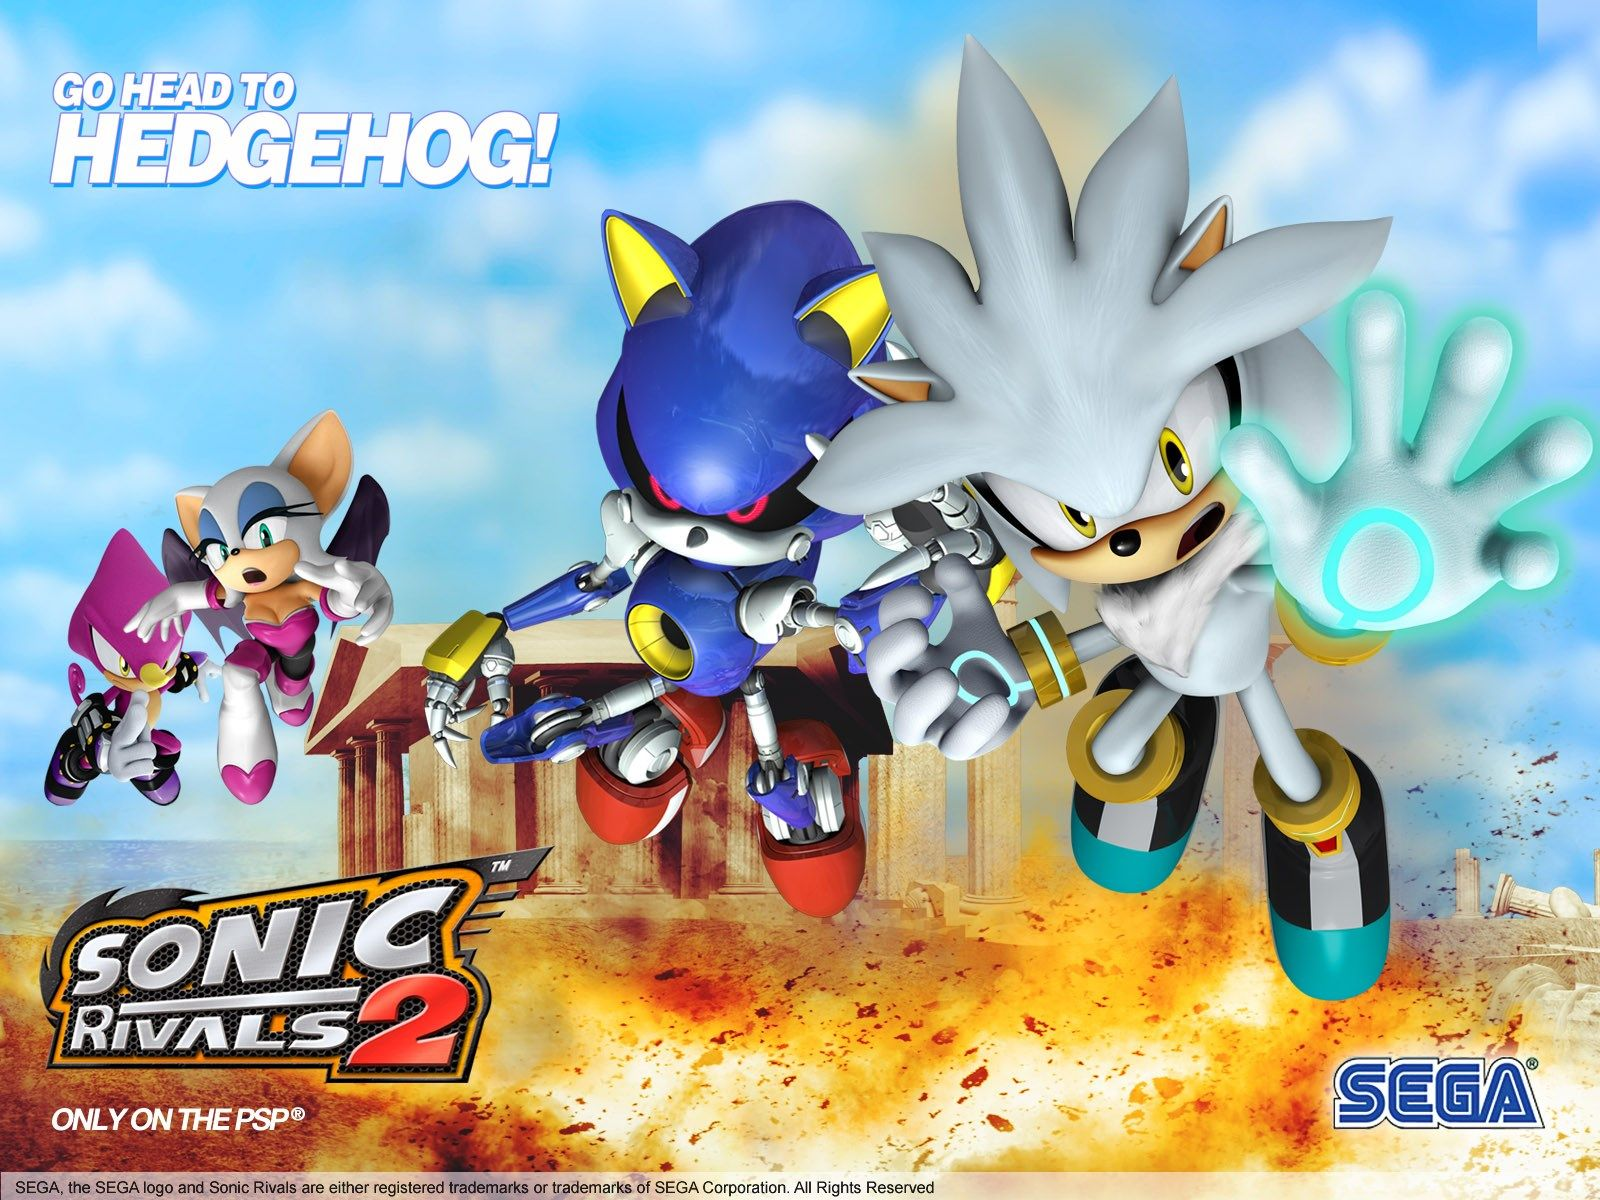 widescreen wallpaper sonic rivals 2, 395 kB Princeton